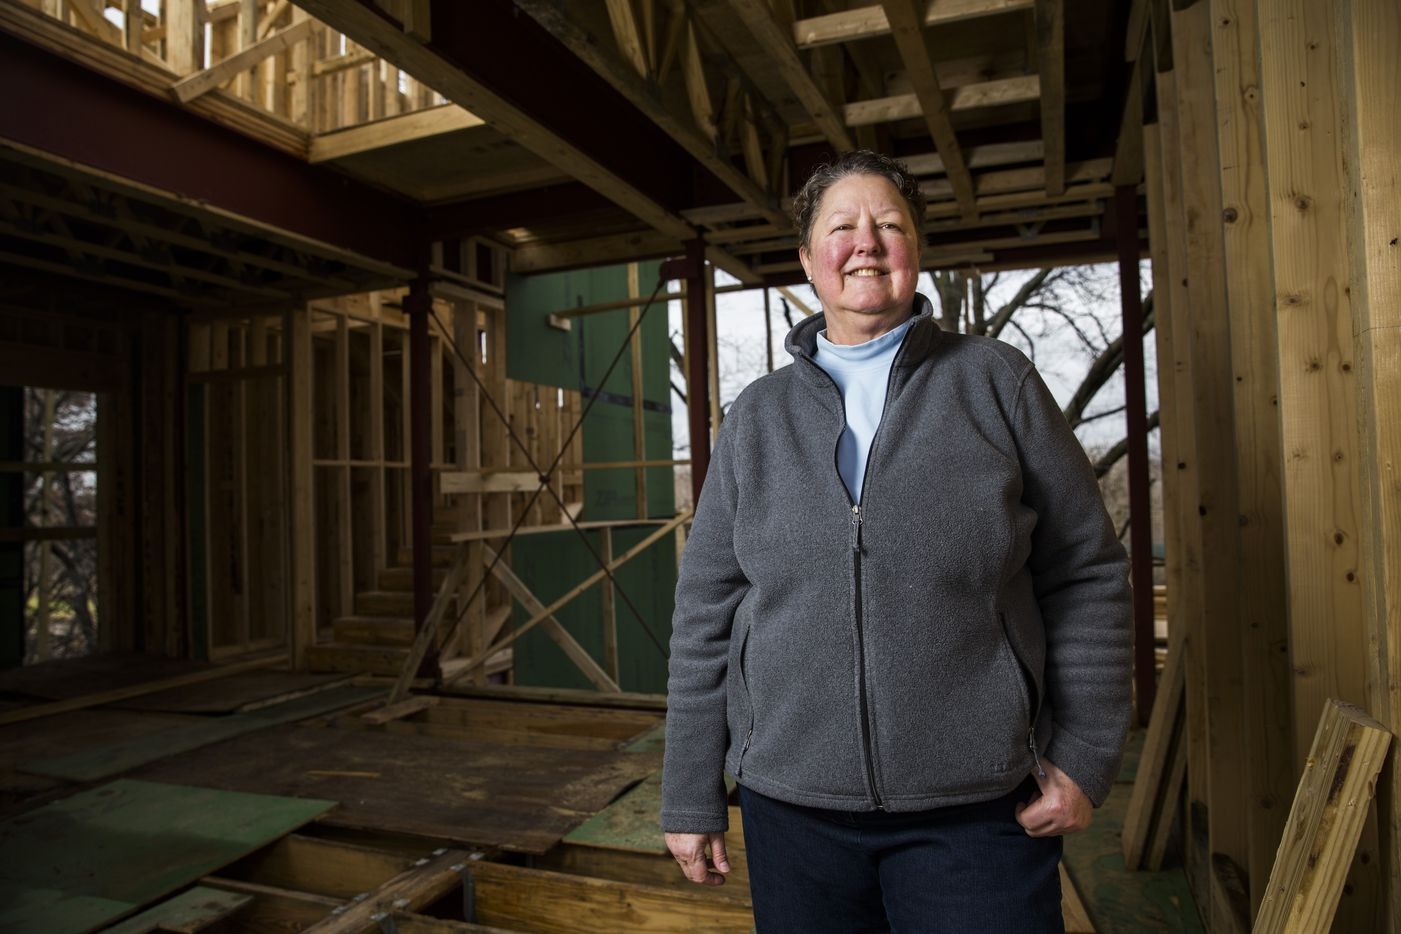 Builder Diane Cheatham poses for a portrait inside a home under construction in her Urban Reserve home development on Vanguard Way  in Dallas.